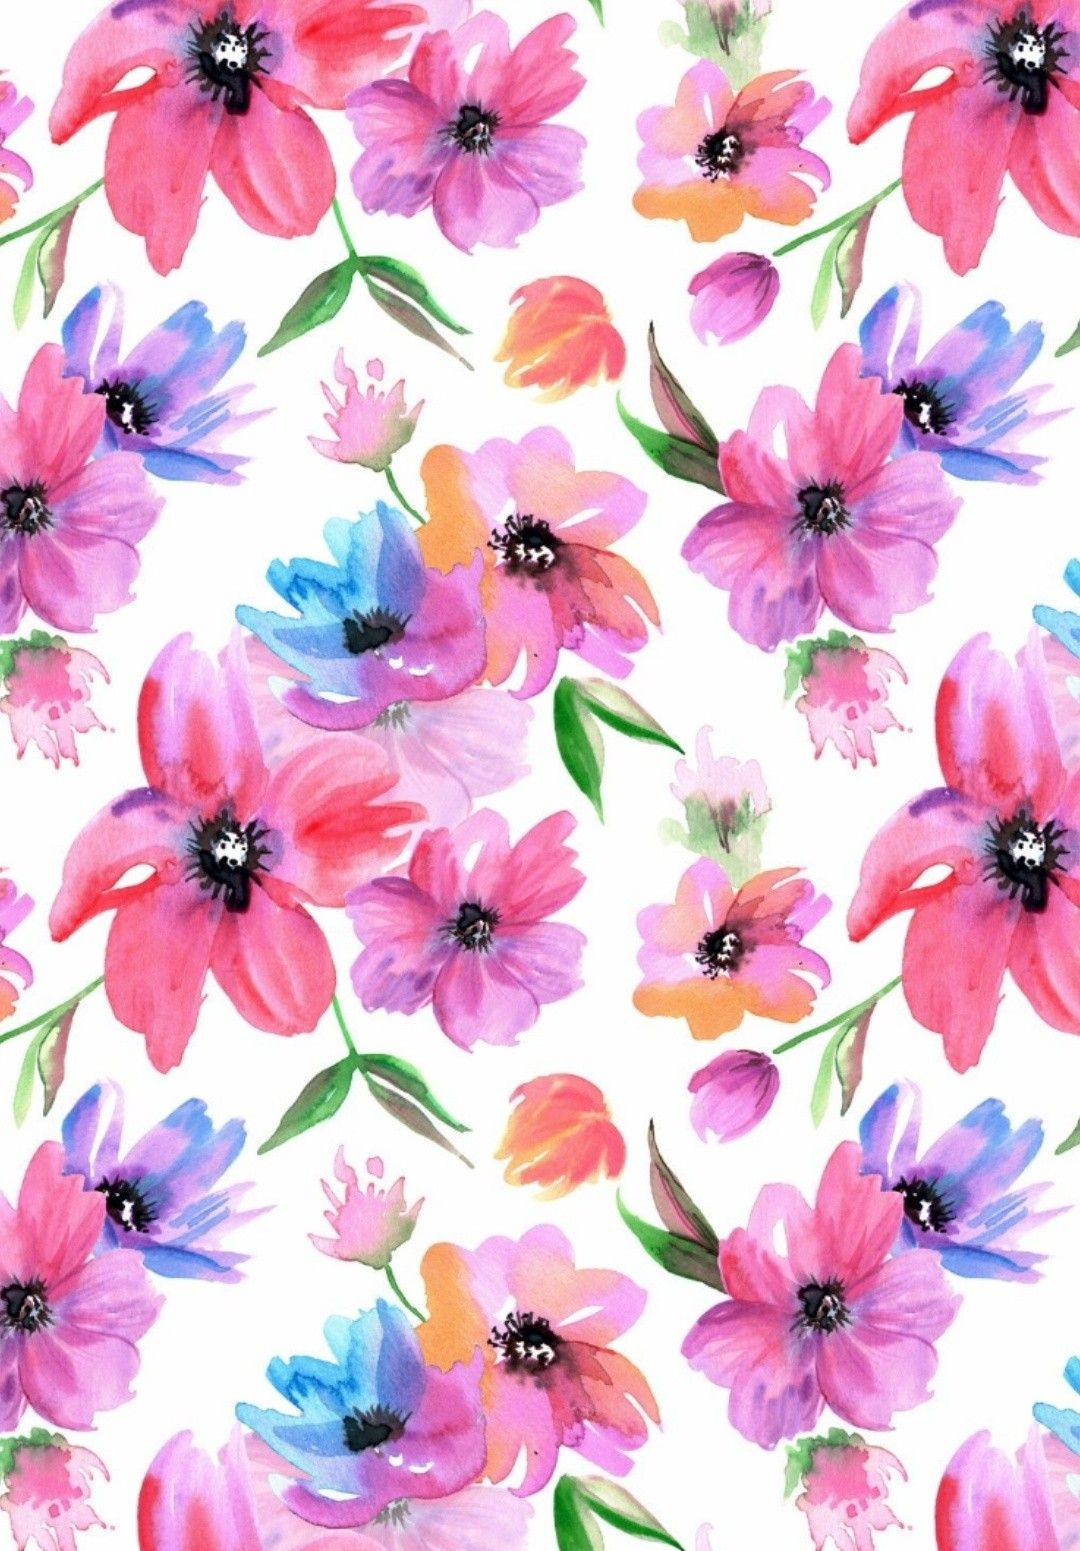 Watercolor Seamless Patterns With Pink And Purple Flowers In 2020 Flower Phone Wallpaper Floral Background Floral Wallpaper